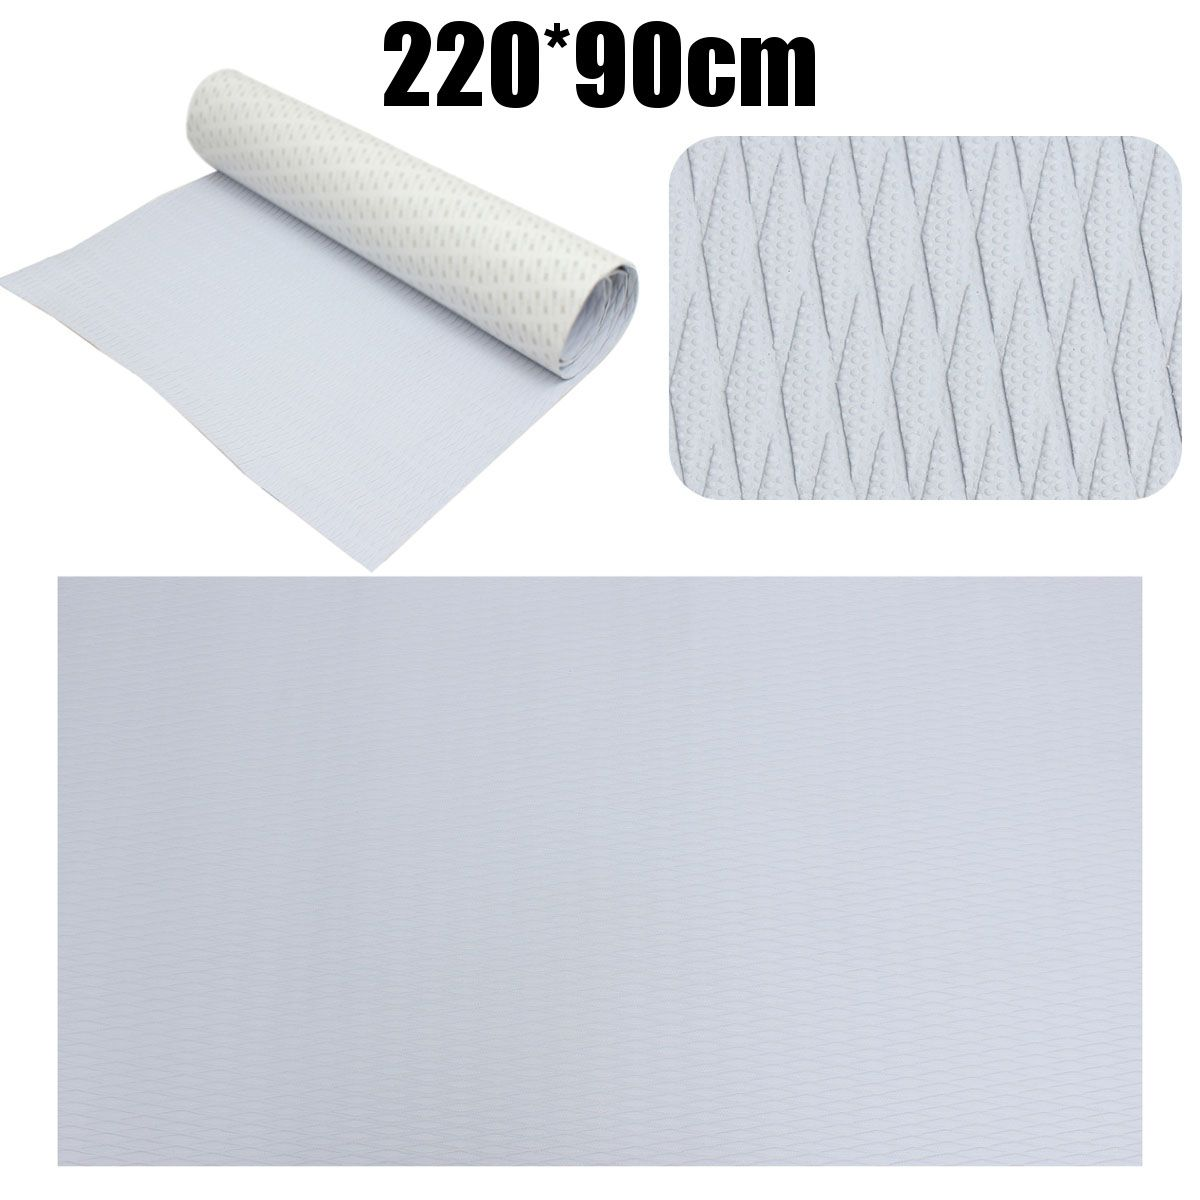 New 5mm 220cm x 90cm Self-Adhesive EVA Foam RV Boat Decking Sheet Marine Flooring Faux Teak Grey